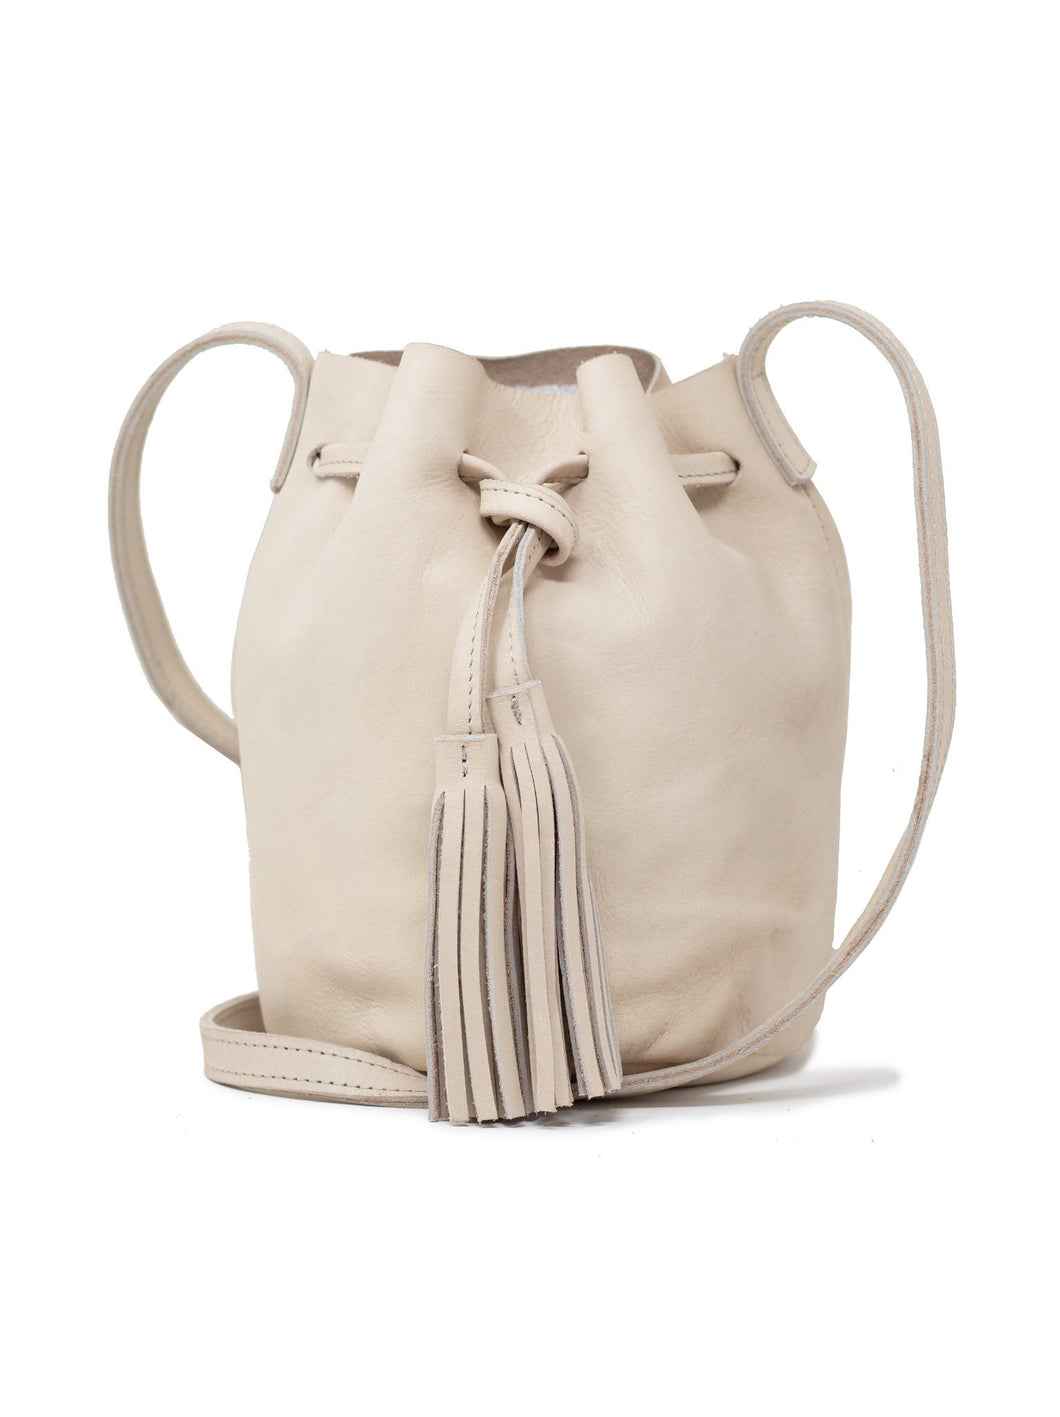 maria drawstring tassel leather bucket bag fog